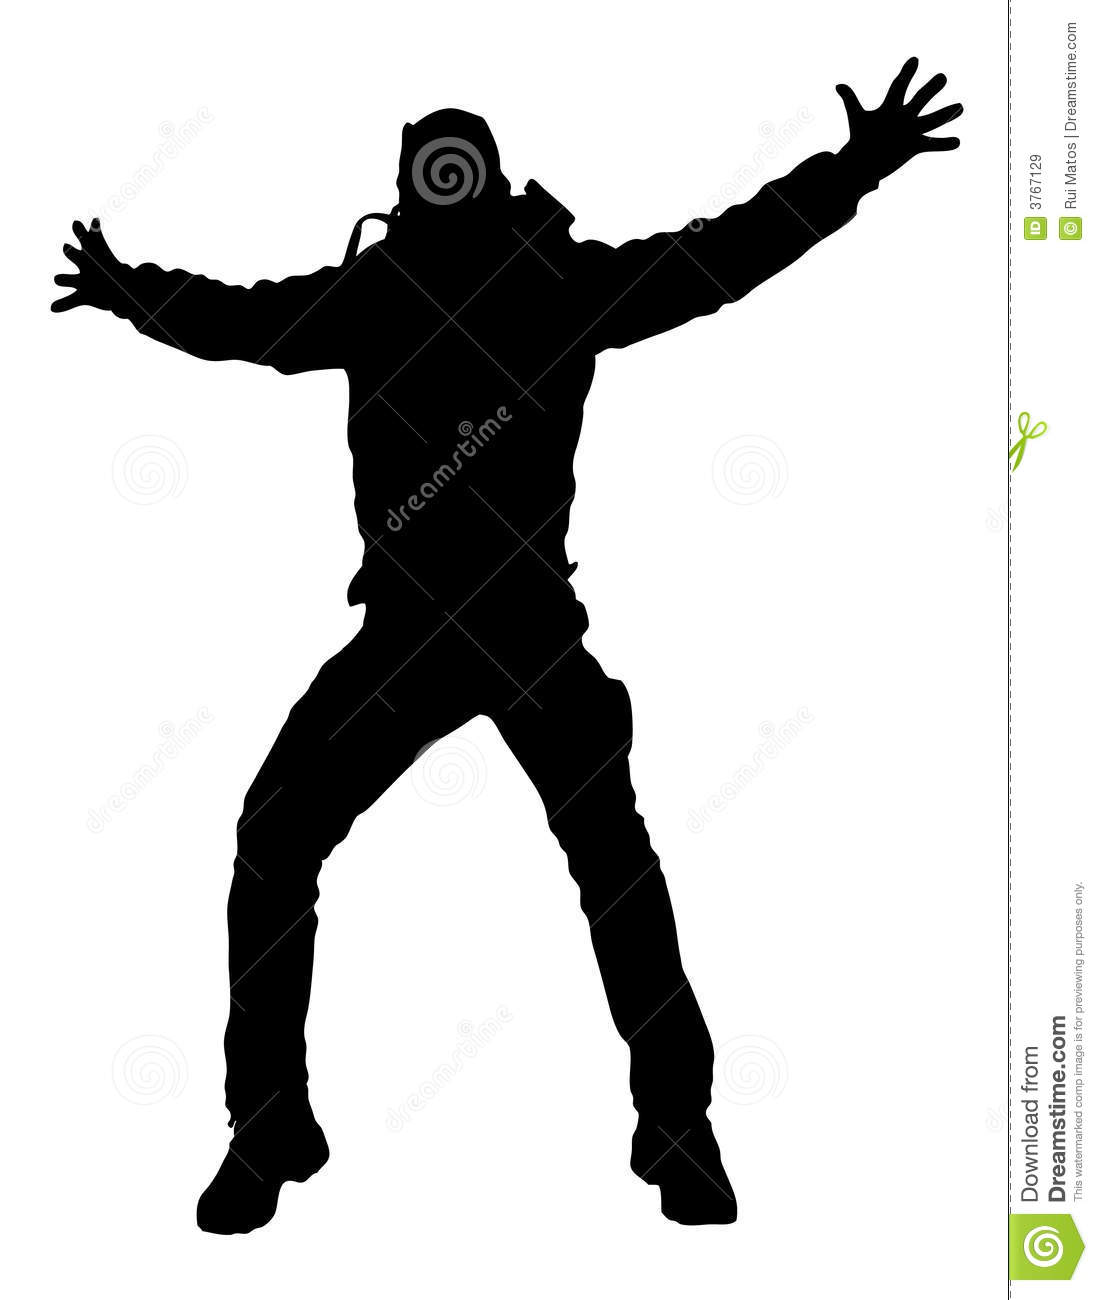 Happy Man jumping silhouette